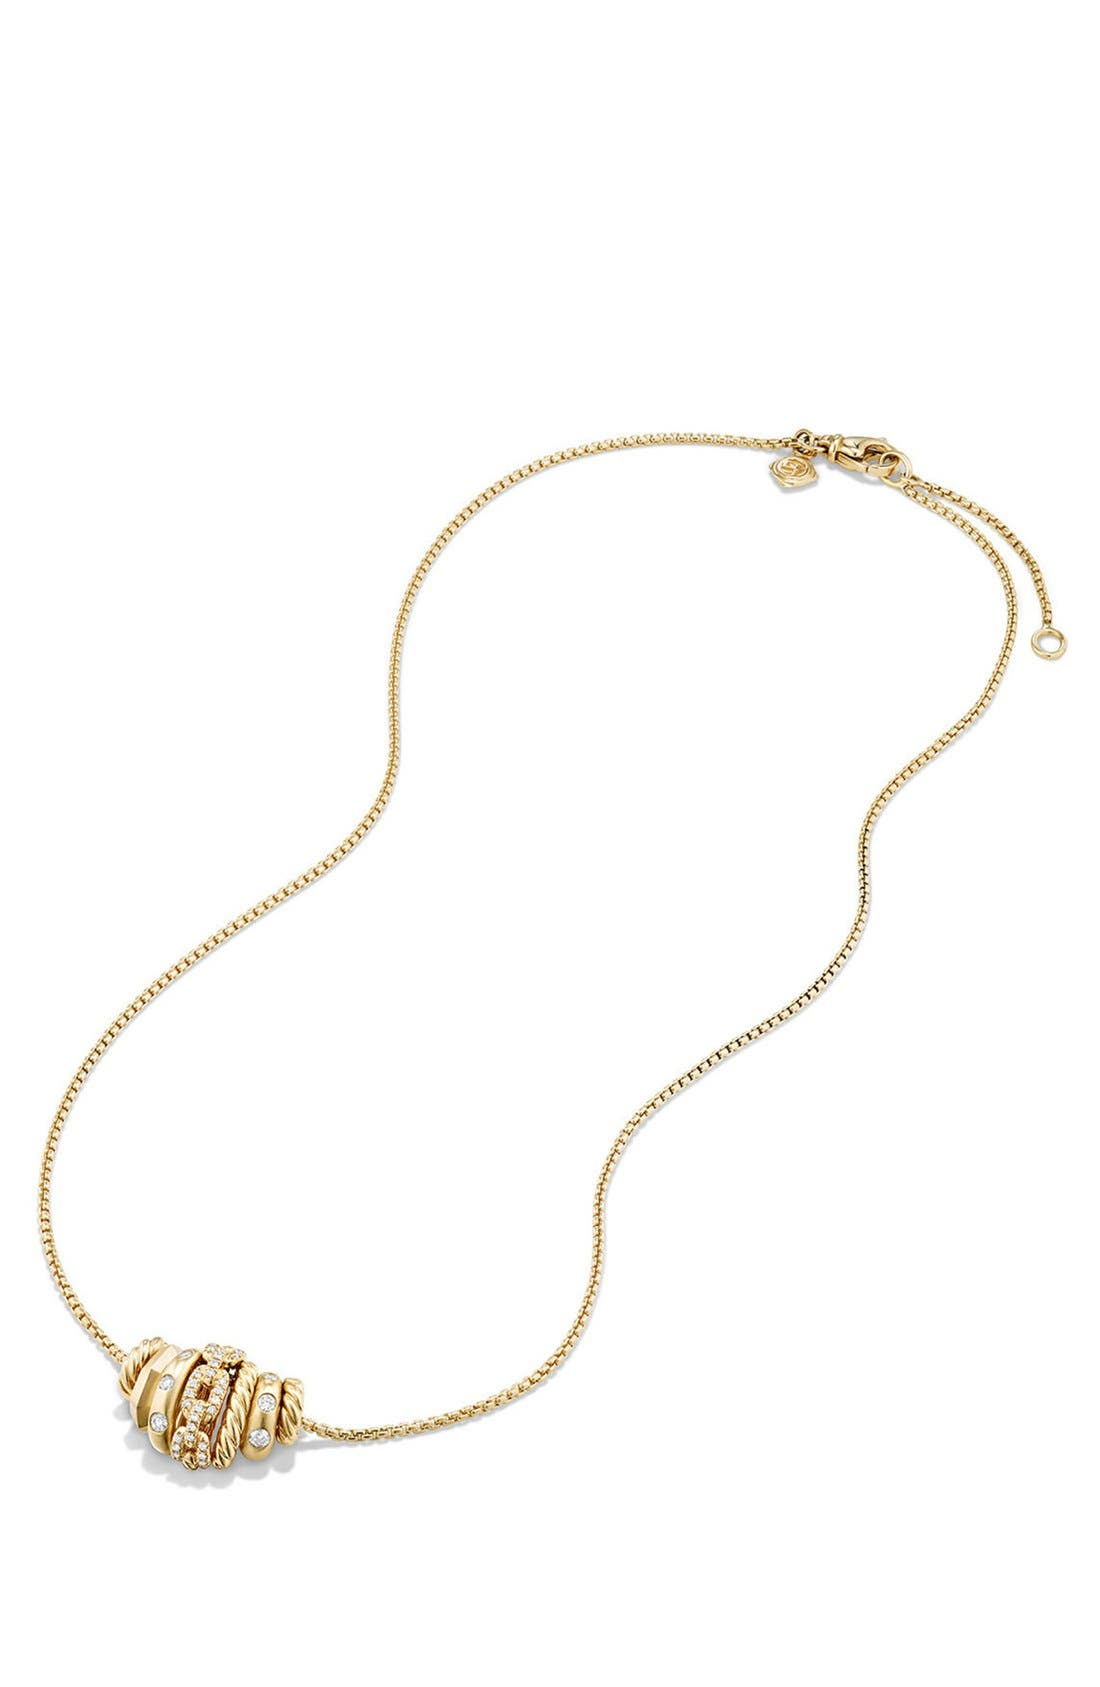 'Stax' Pendant Necklace with Diamonds in 18K Gold,                             Alternate thumbnail 2, color,                             Yellow Gold